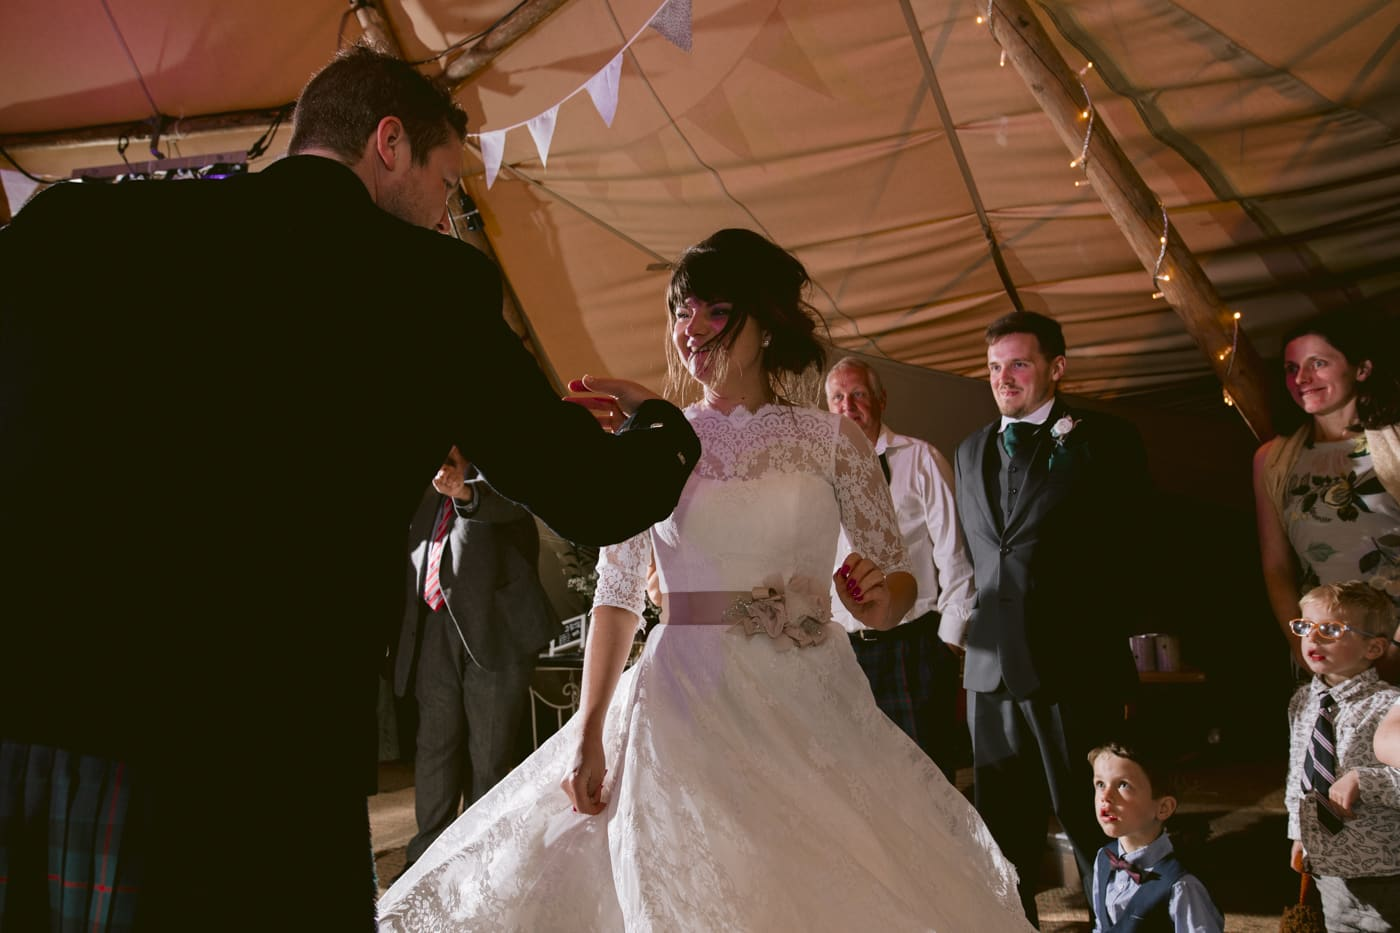 Dancing Bride with Groom Taking Lead Under Tipi Tent